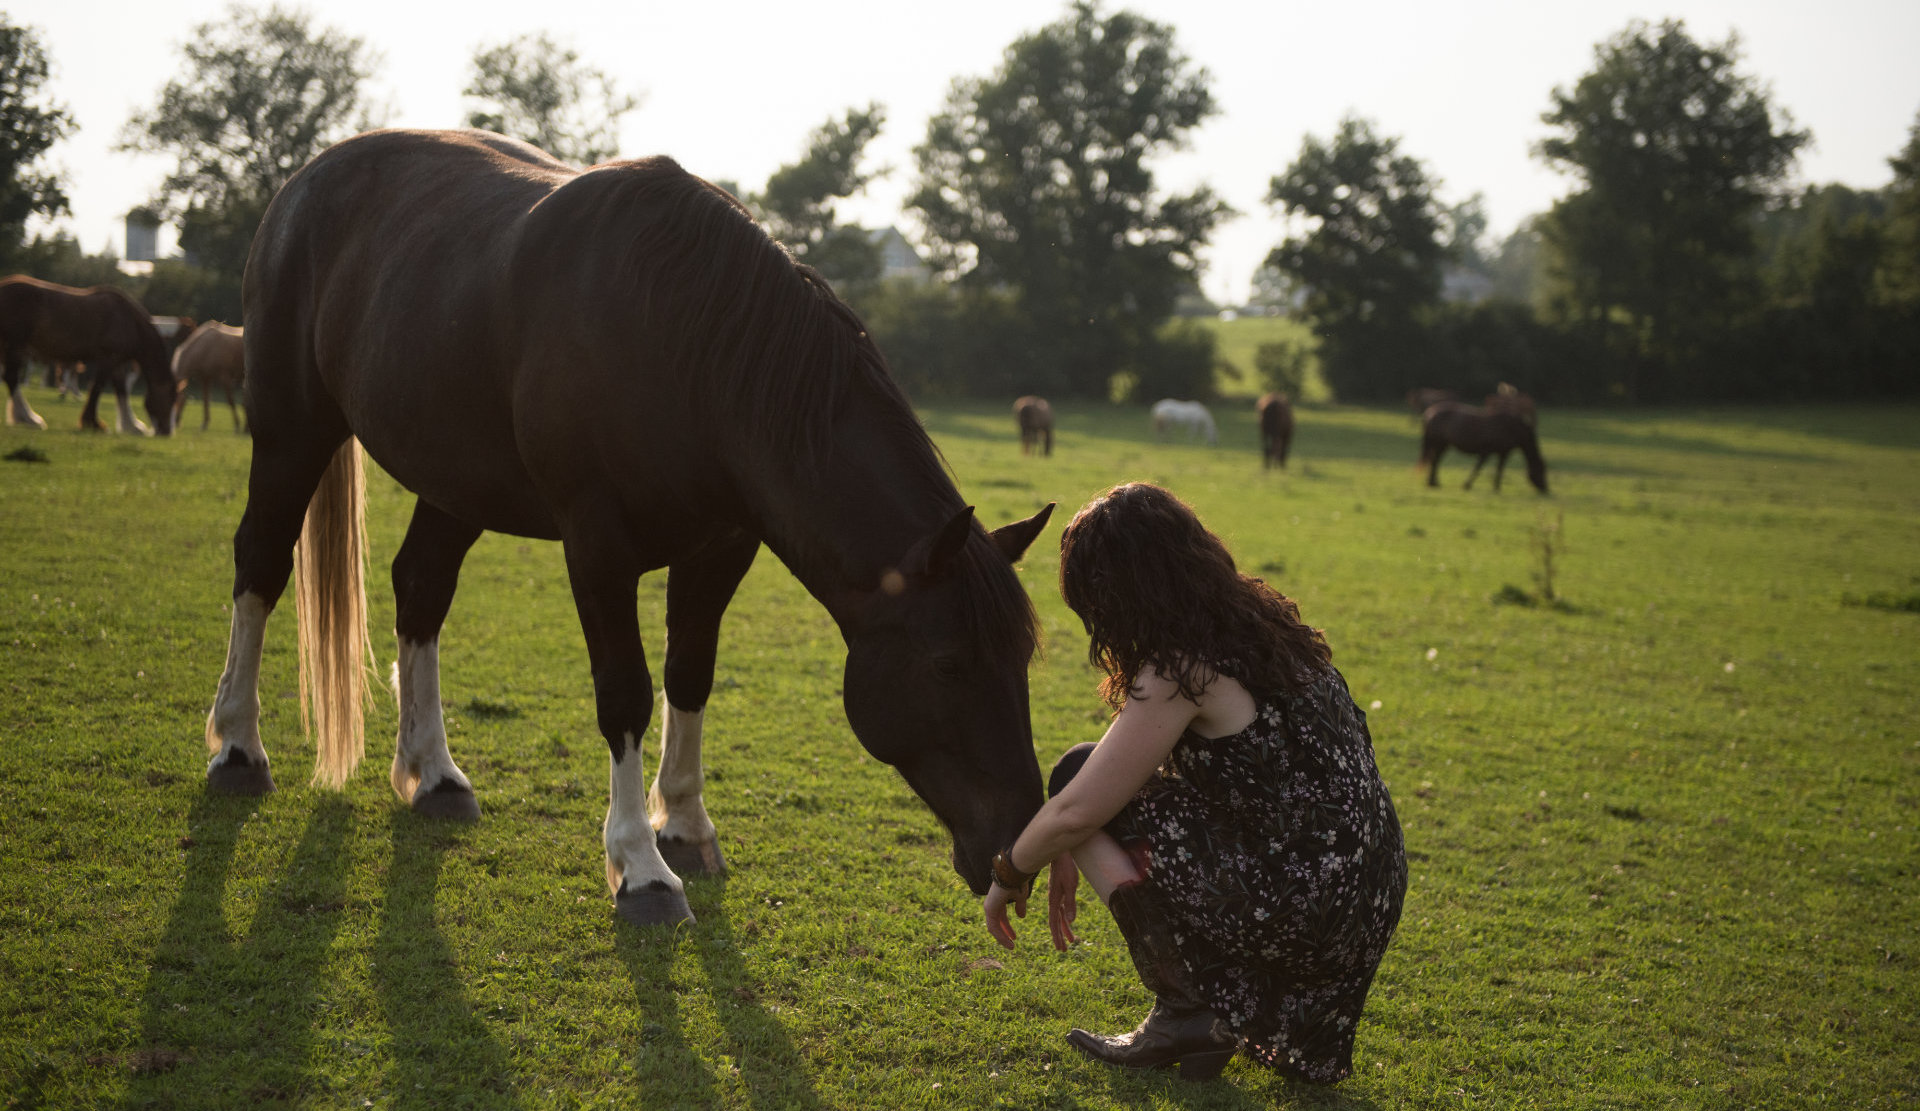 Sarah Schlote kneeling in front of a horse.